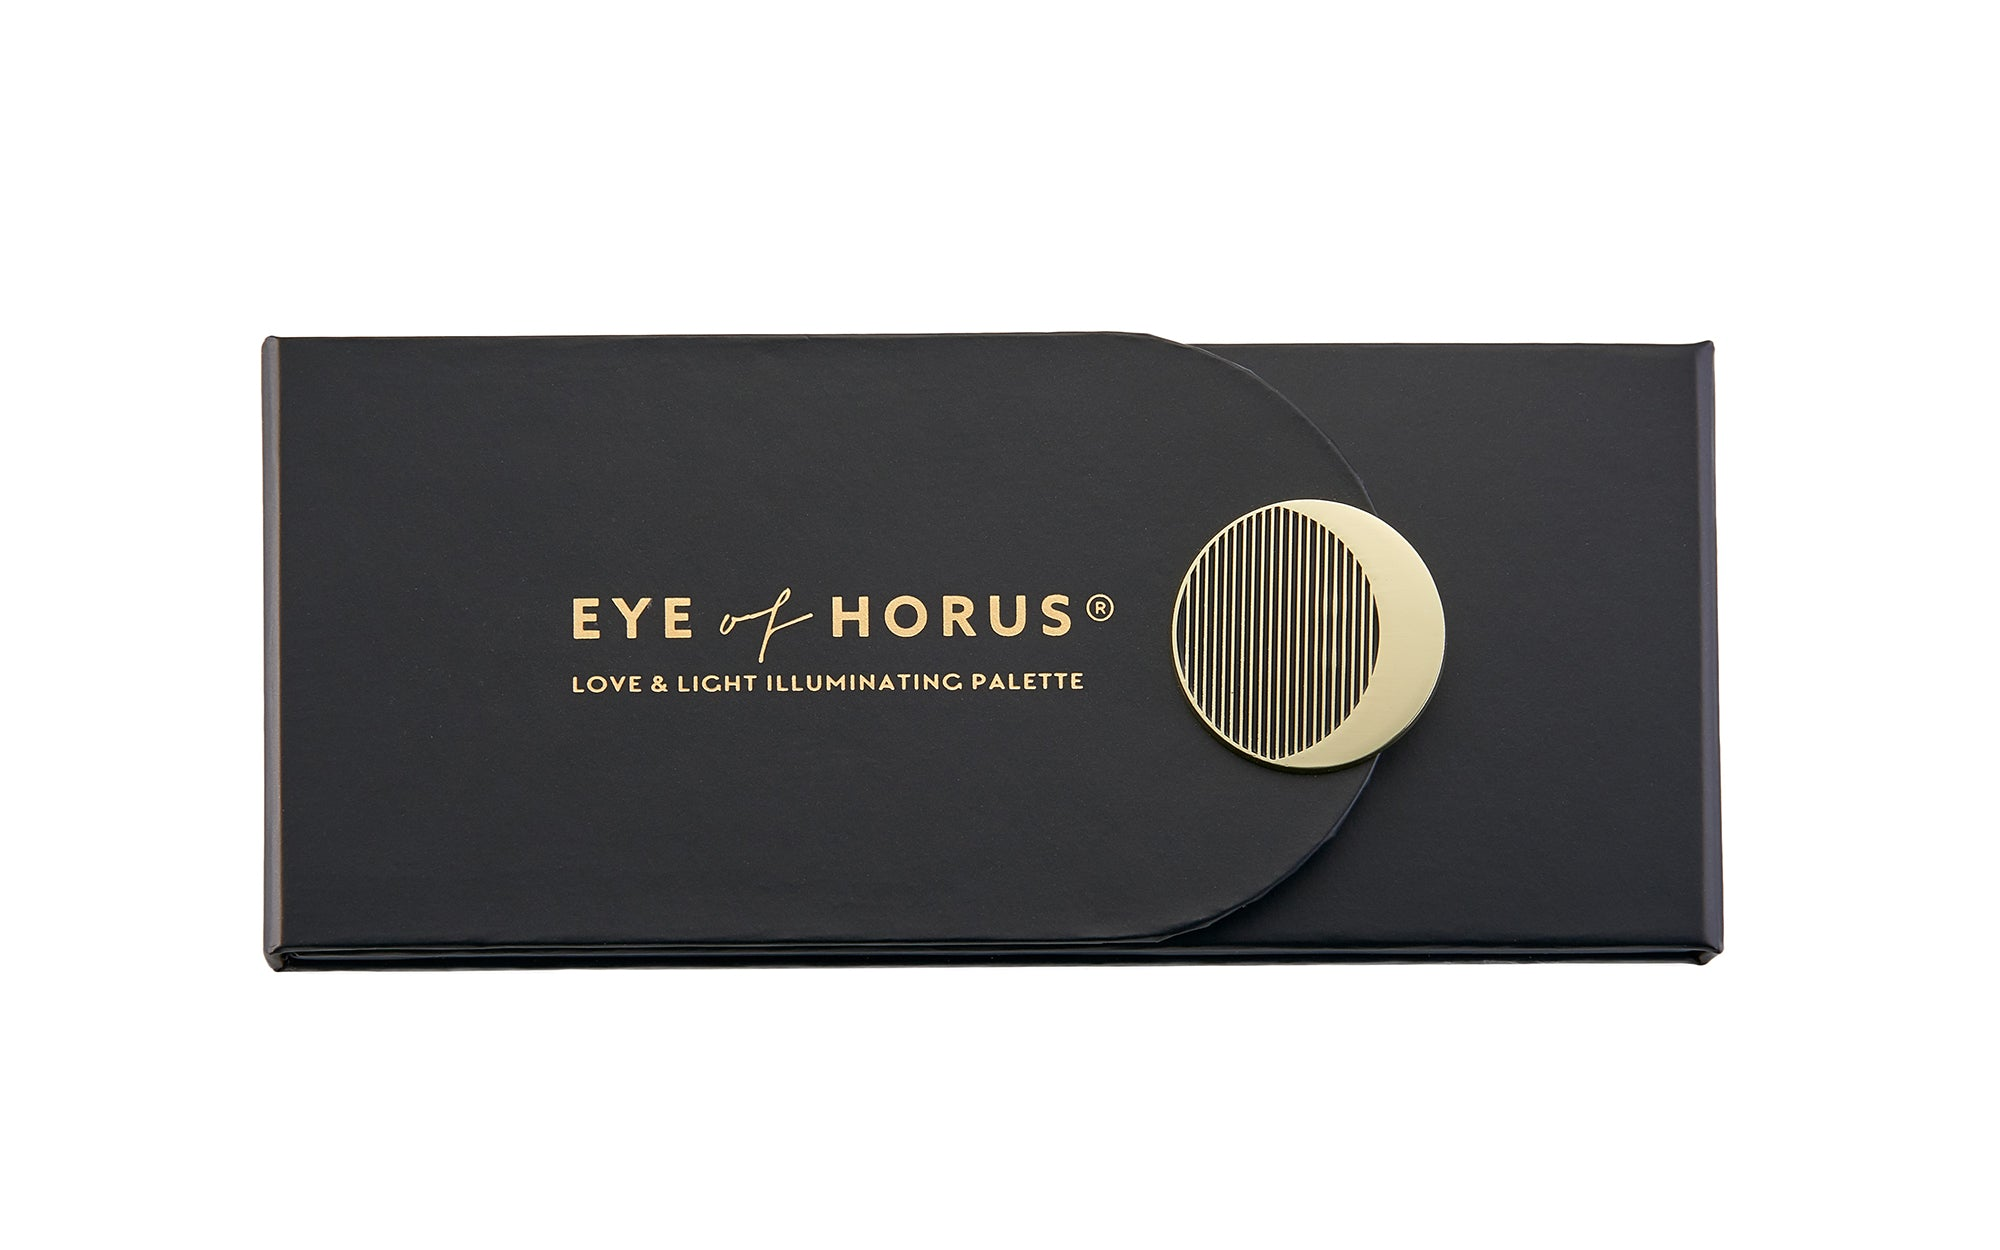 Eye Of Horus, Sacred Earth Palette, Natural eyeshadow, natural blush, blush, highlighter, bronzer, all natural, organic, eye shadow, Natuurlijke, Clean beauty, green beauty, natural makeup, vegan, vegan makeup, cruelty-free, Love and light palette, Love & Light Illuminating Palette